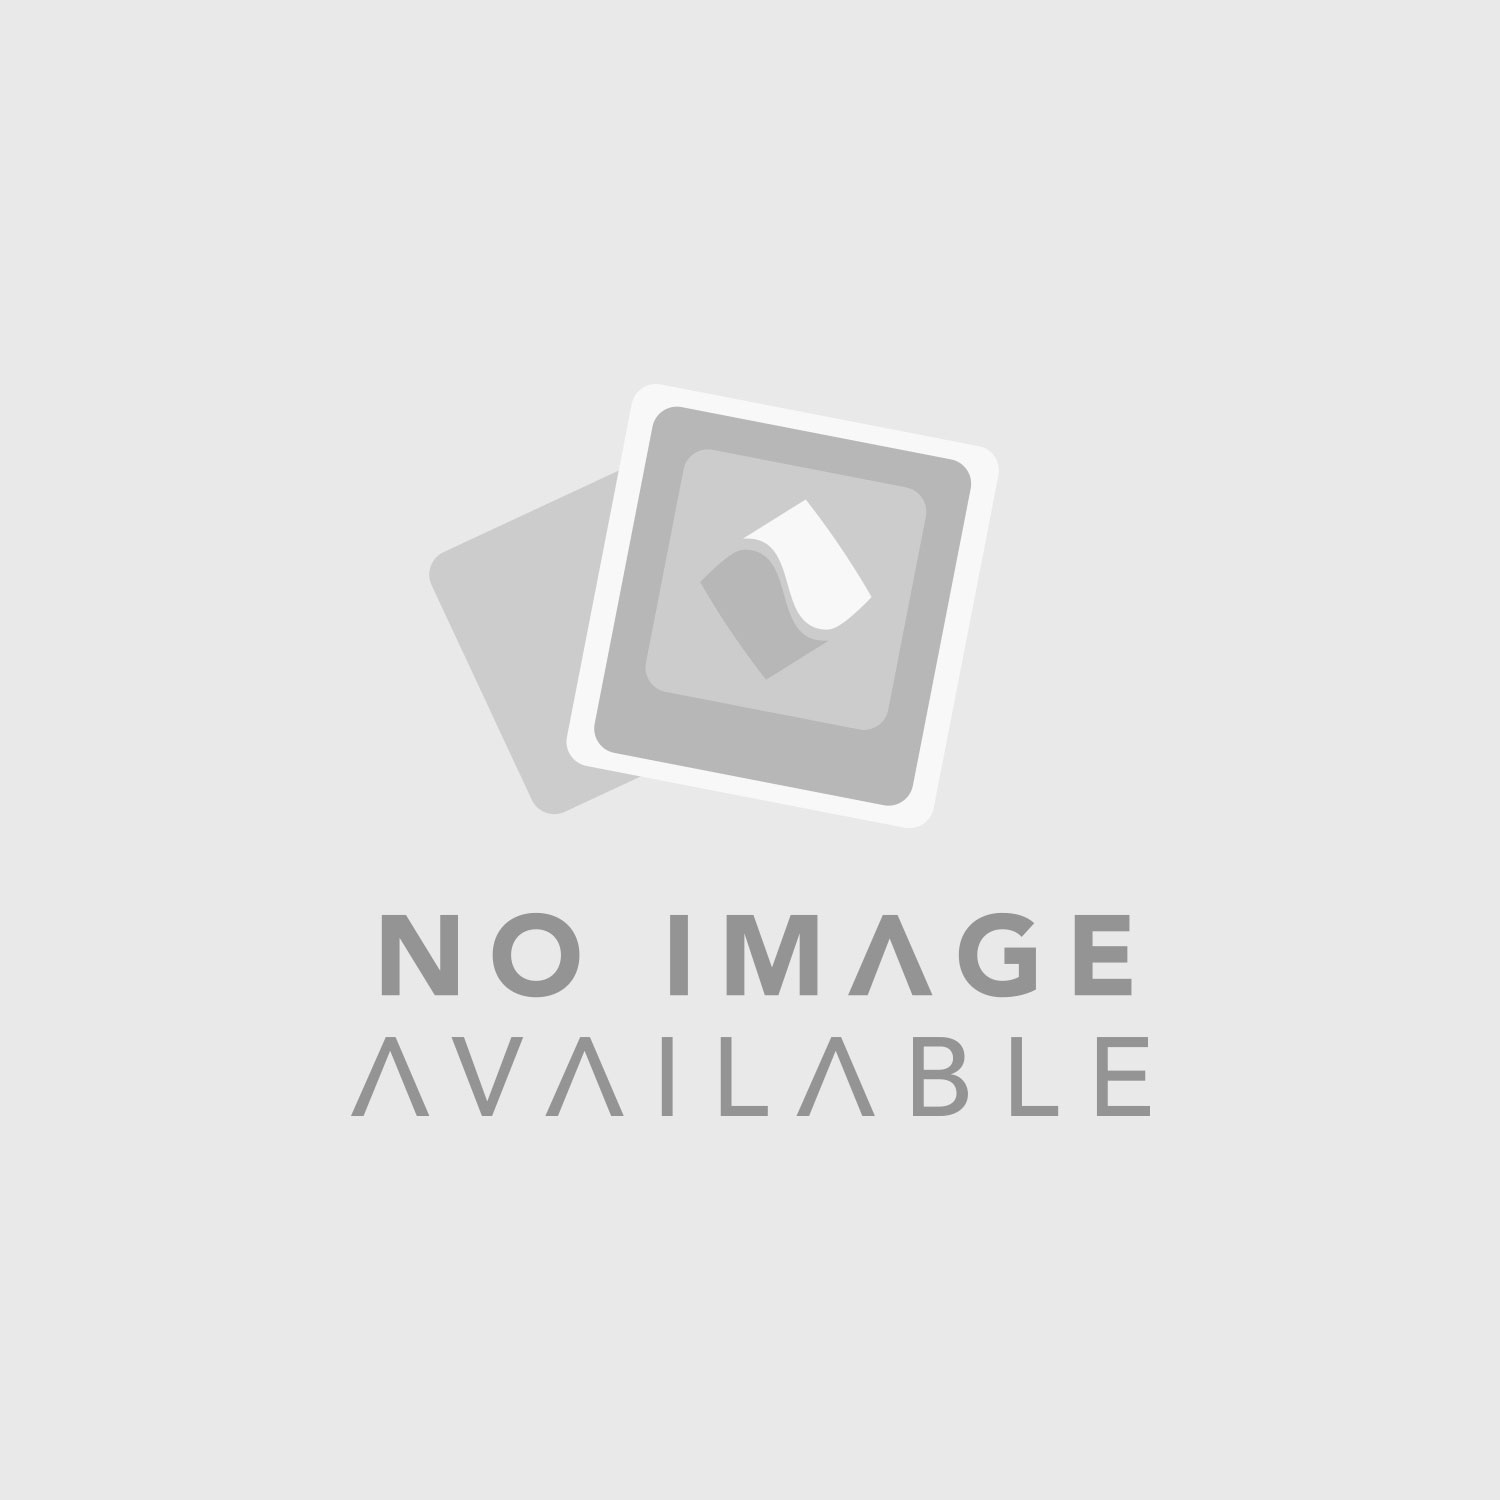 "Electro-Voice EVF-1122S 12"" 2-Way Full-Range Outdoor Speaker (Fiberglass-Finish, White, 60 x 60°)"